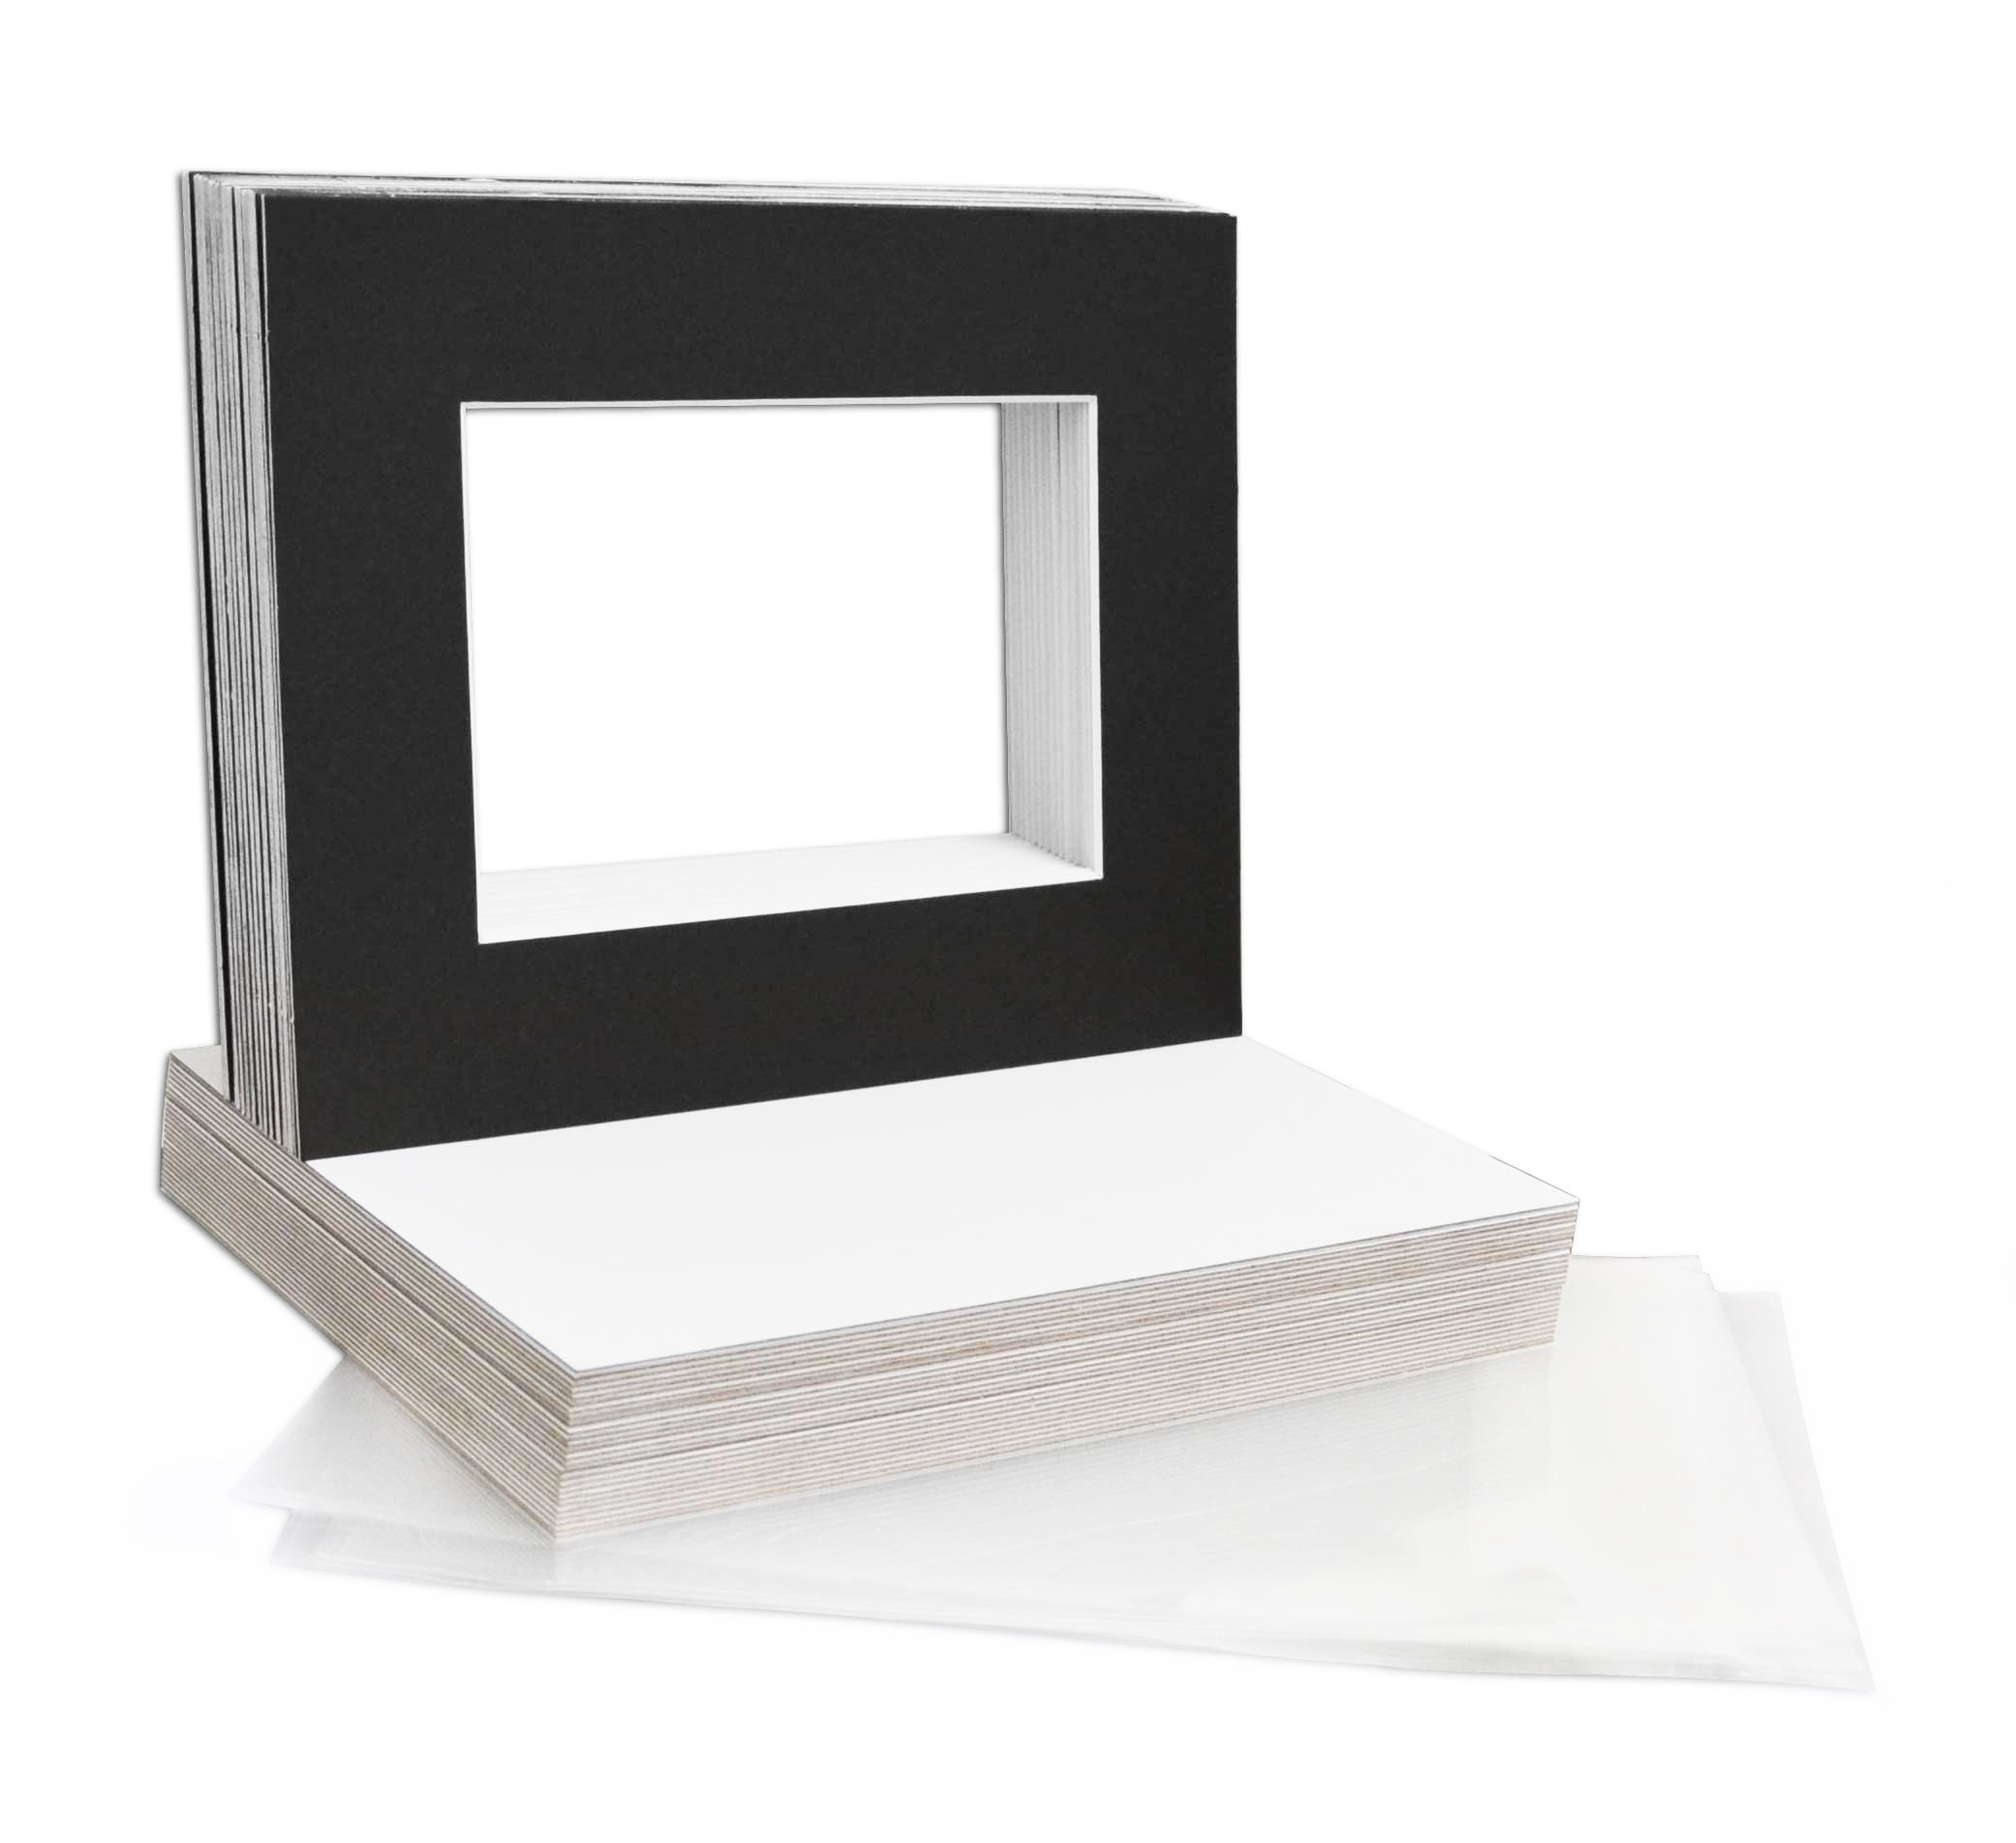 Mat Board Center, 8x10 Picture Mat Sets for 5x7 Photo. Includes a Pack of 50 White Core Bevel Pre-Cut White Core Matte & 50 Backing Board & 50 Clear Bags (Black) by MBC MAT BOARD CENTER